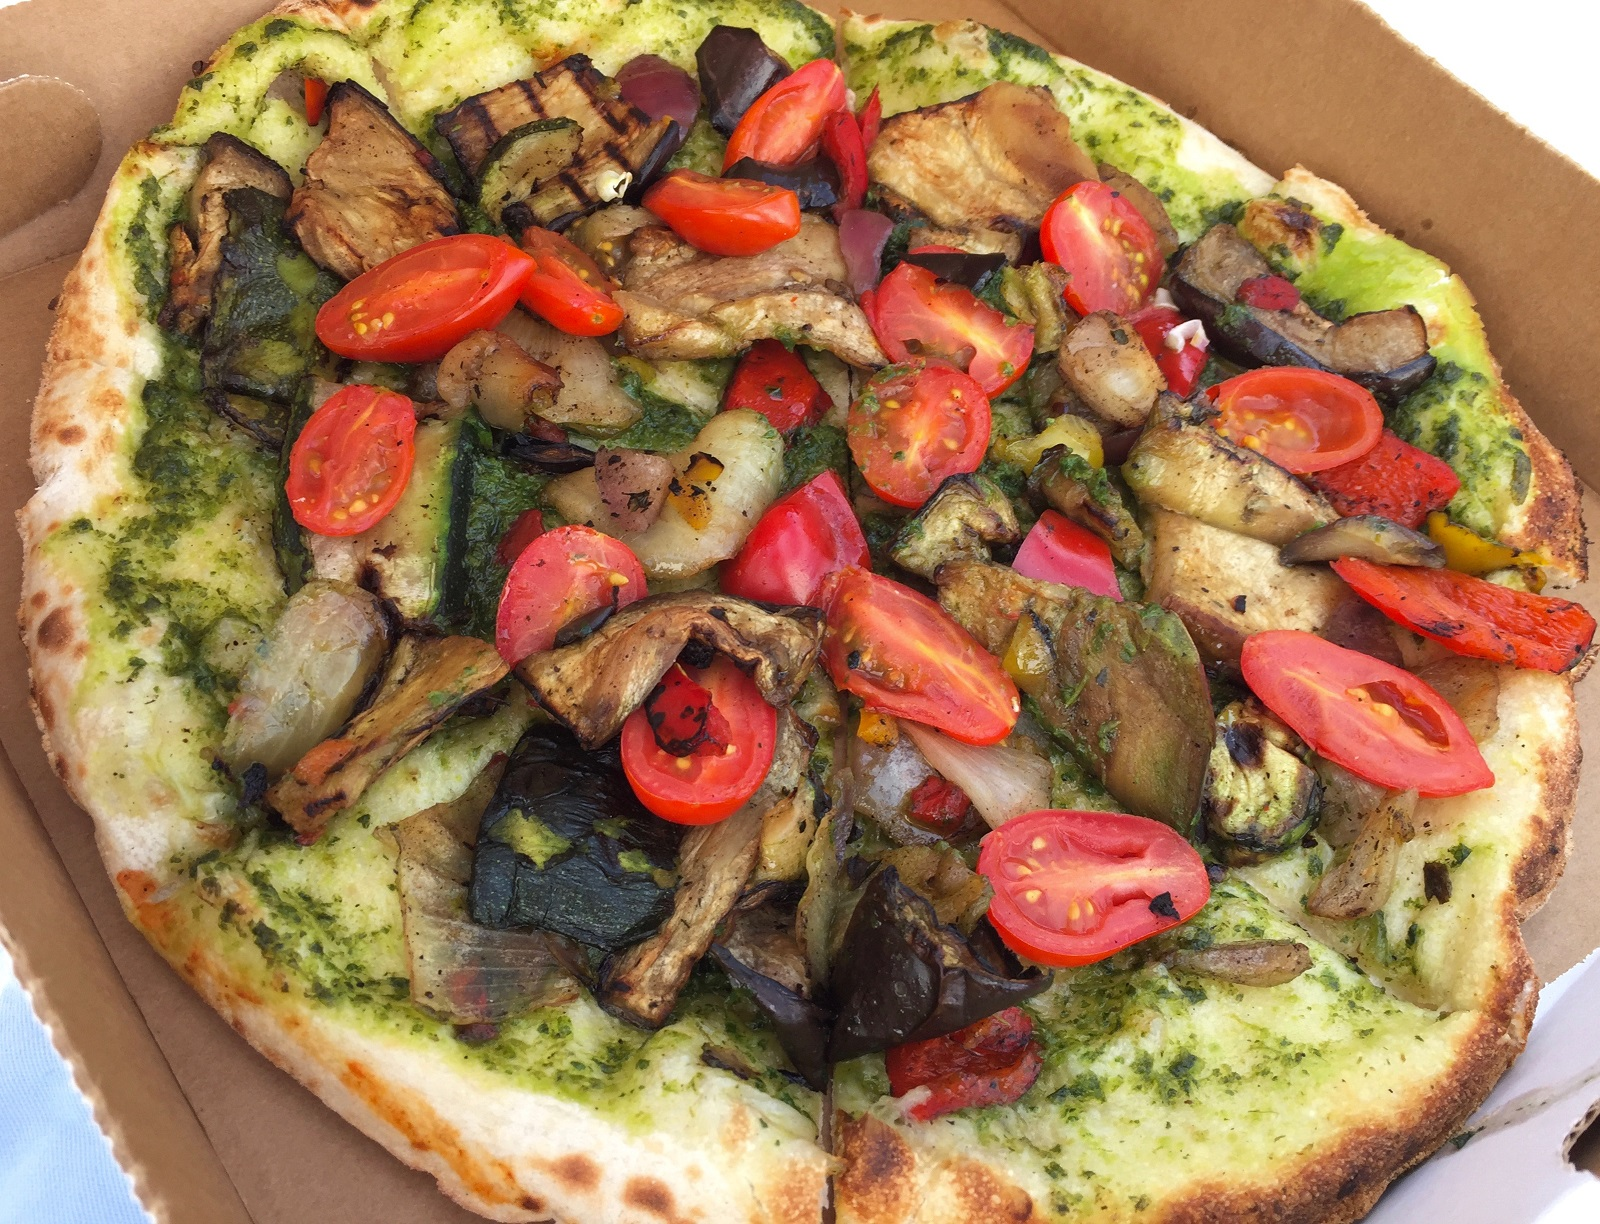 Versilia (vegan delight) pizza from Tuscan Wood Fired Pizza, $8. (Alex Mikol/Special to The News)